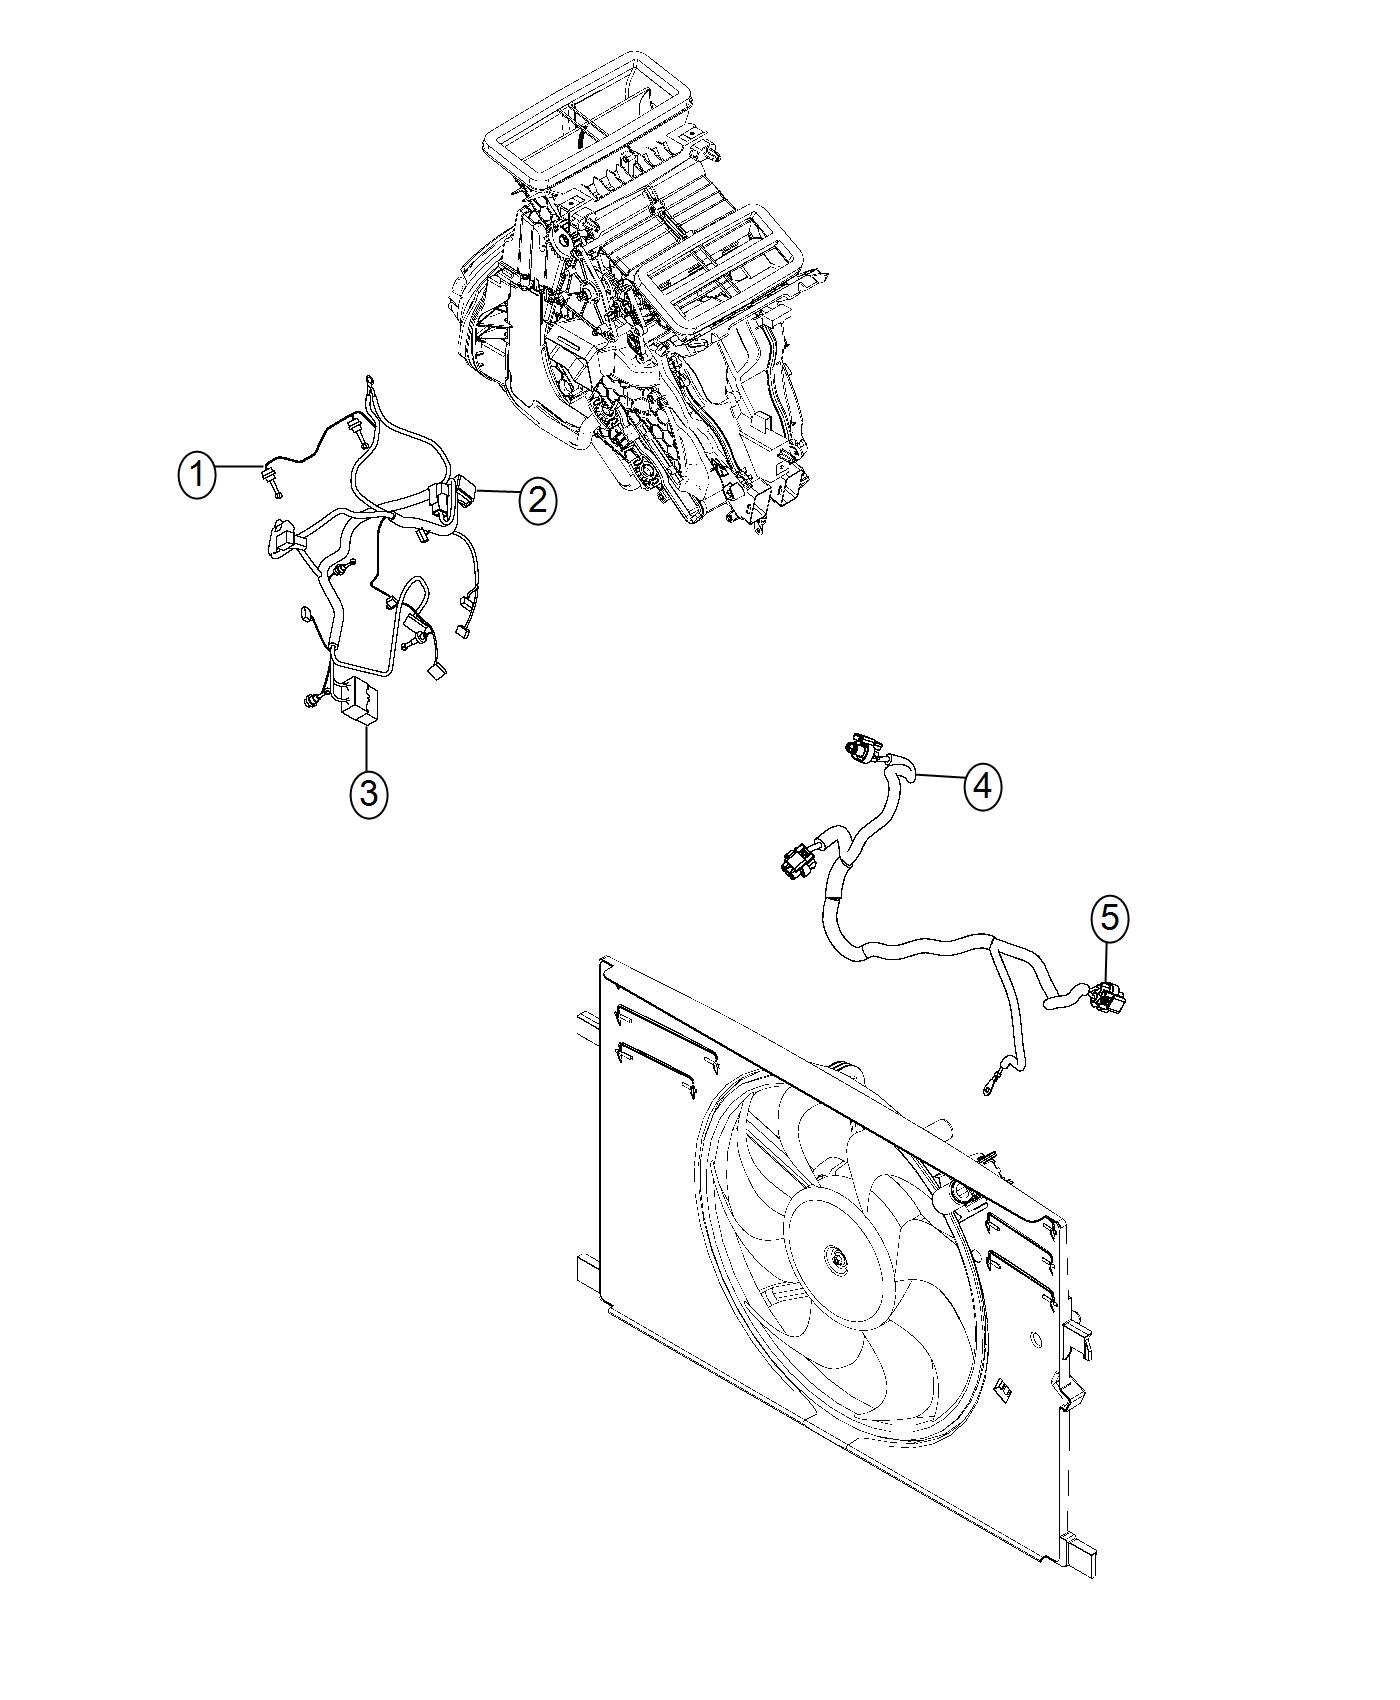 [DIAGRAM in Pictures Database] 2018 Jeep Renegade Wiring